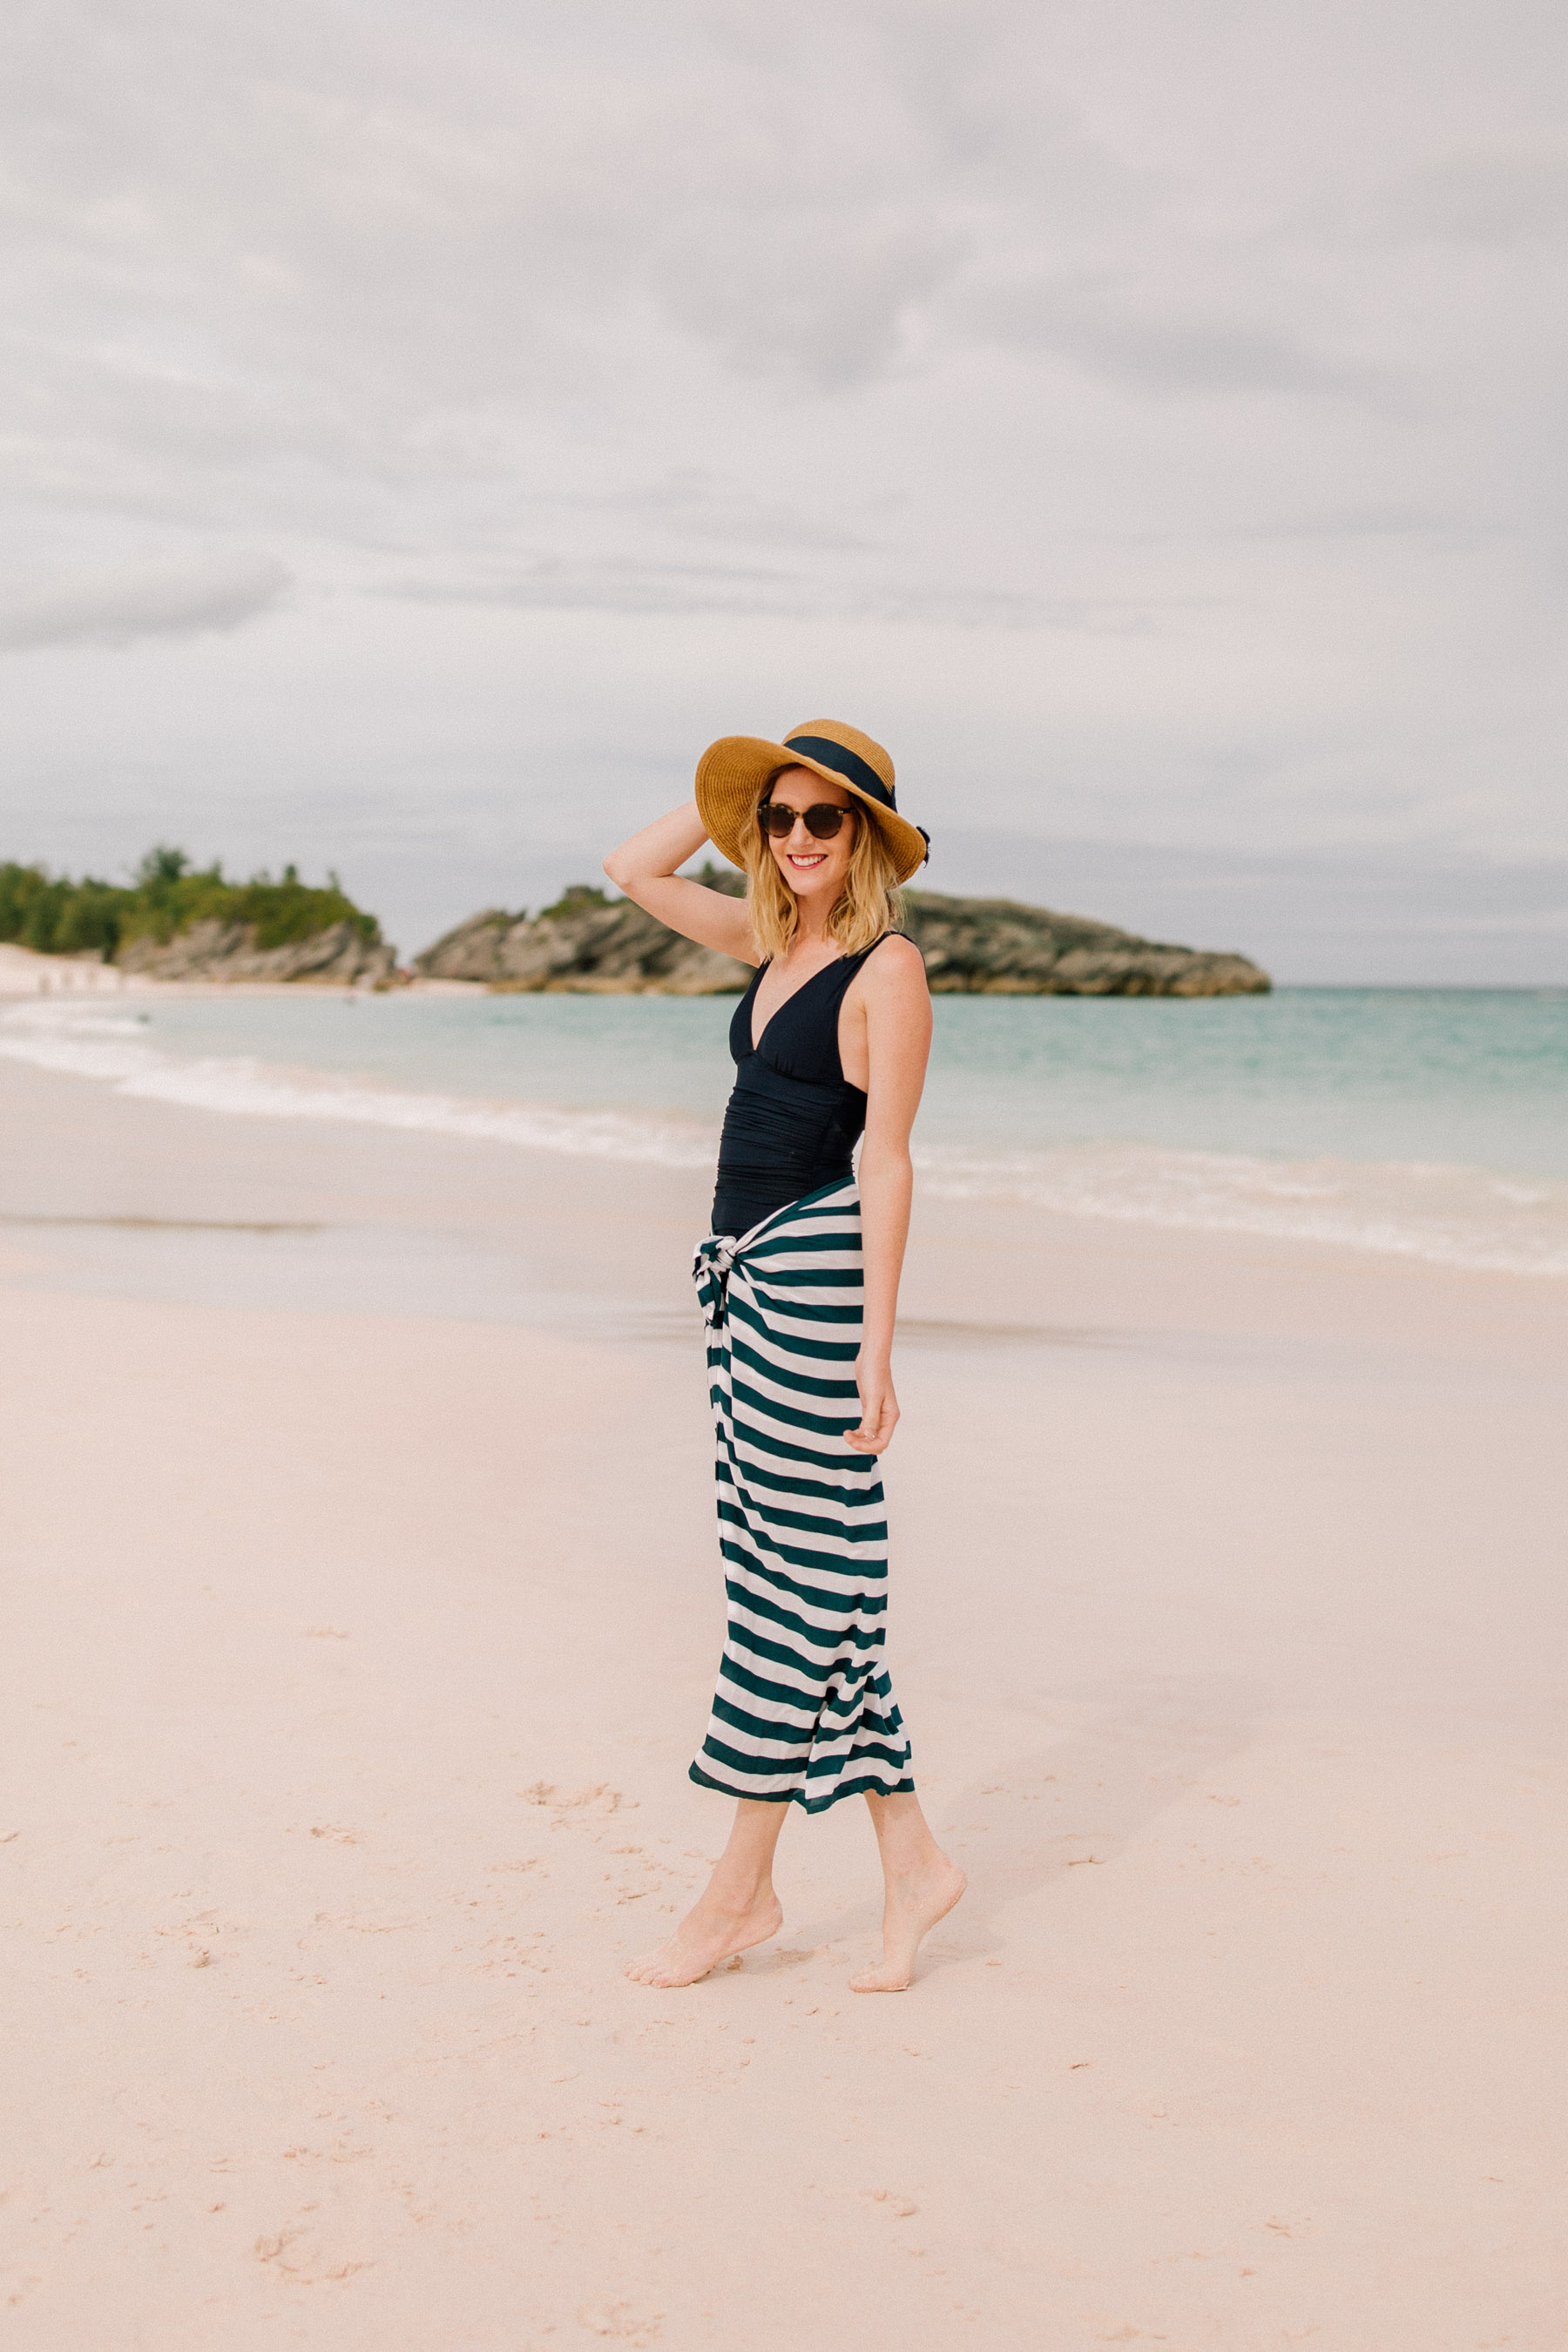 Packable Bow Hat - Tuckernuck /  Navy Striped Sarong / J.Crew Bathing Suit